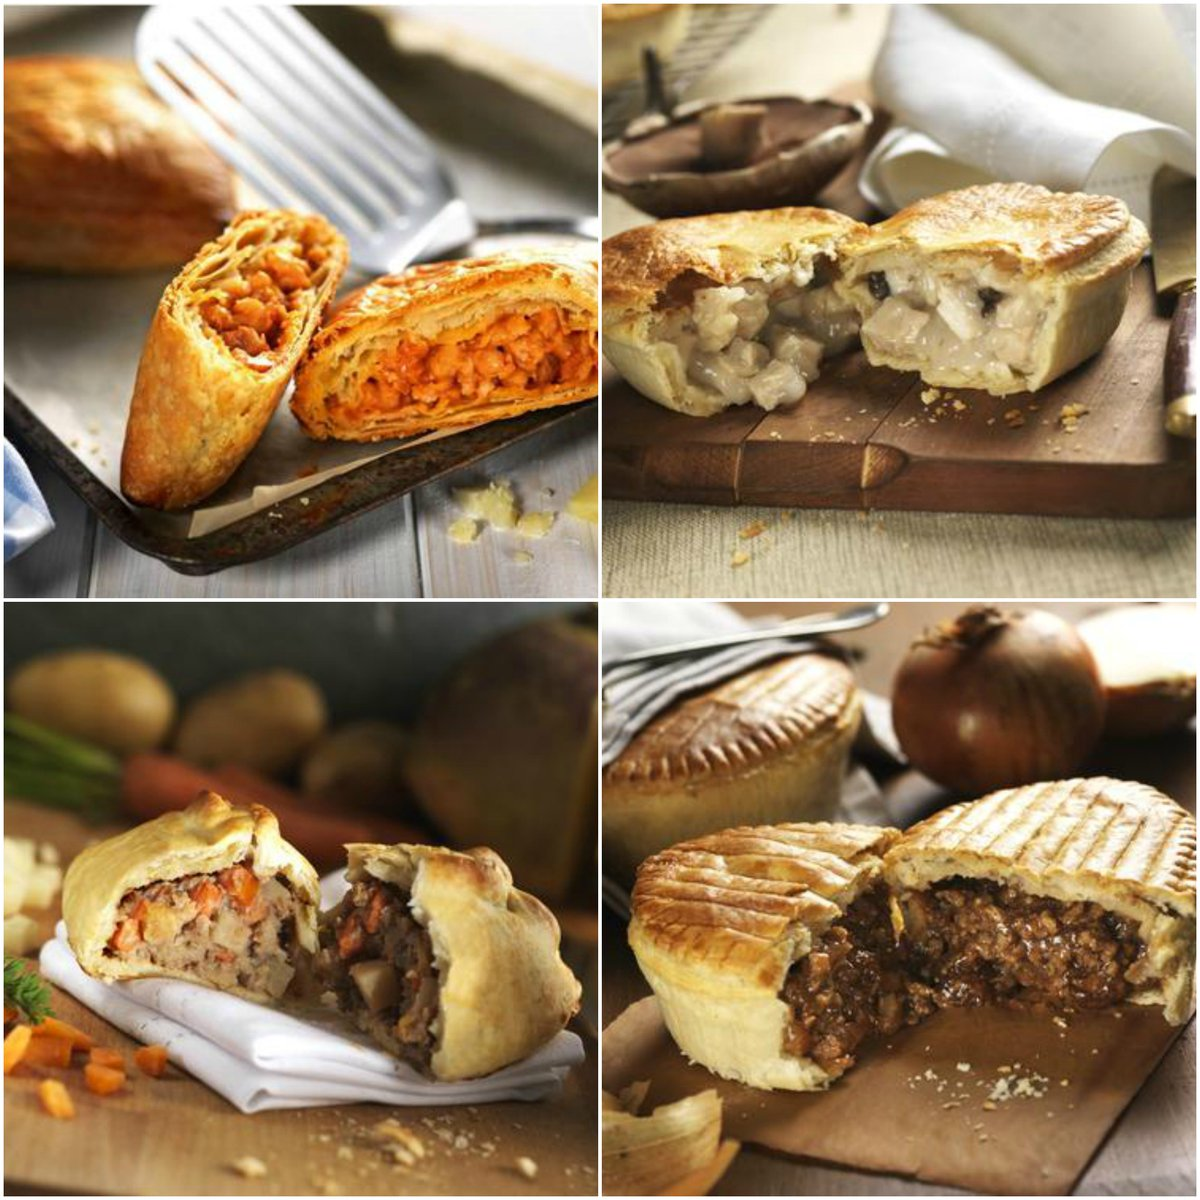 test Twitter Media - A few of our favourite products 😍🍴#beans #mincedbeef #chicken #mushroom #traditional #veg #beef #pasty #pie #lewispies #swansea https://t.co/pC0kMZxabx